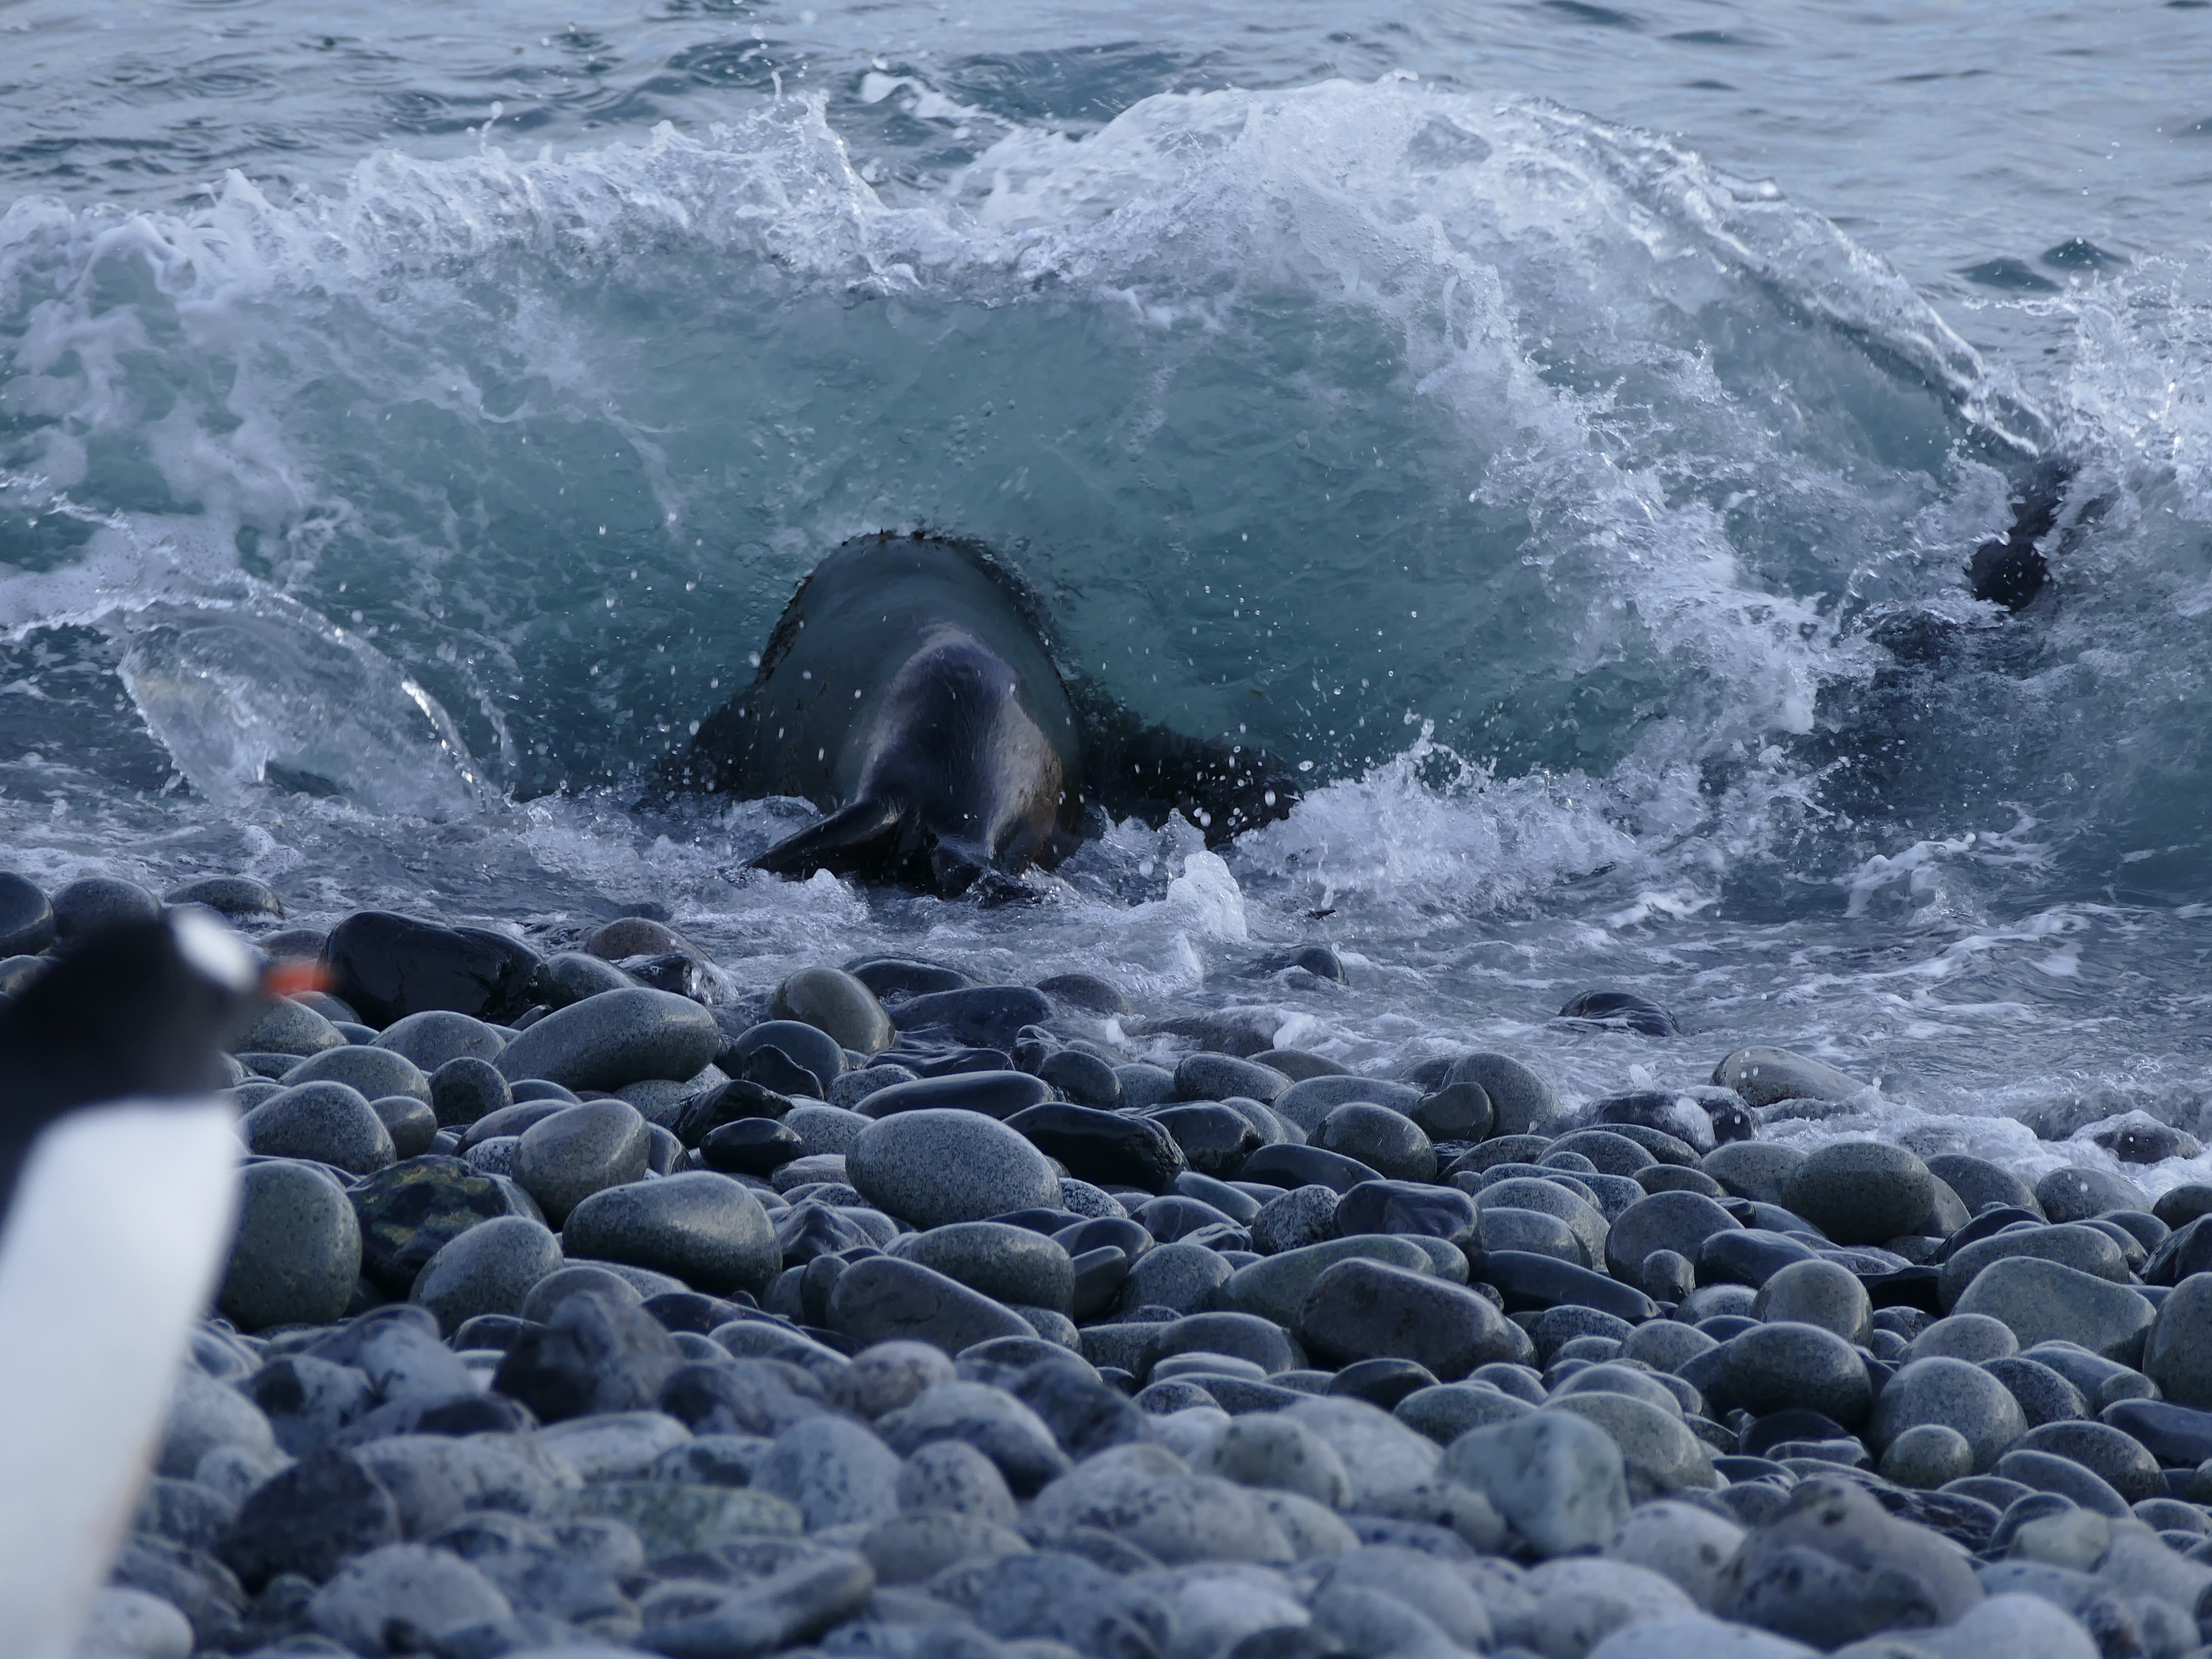 Fur Seal entering the water at Fort Point